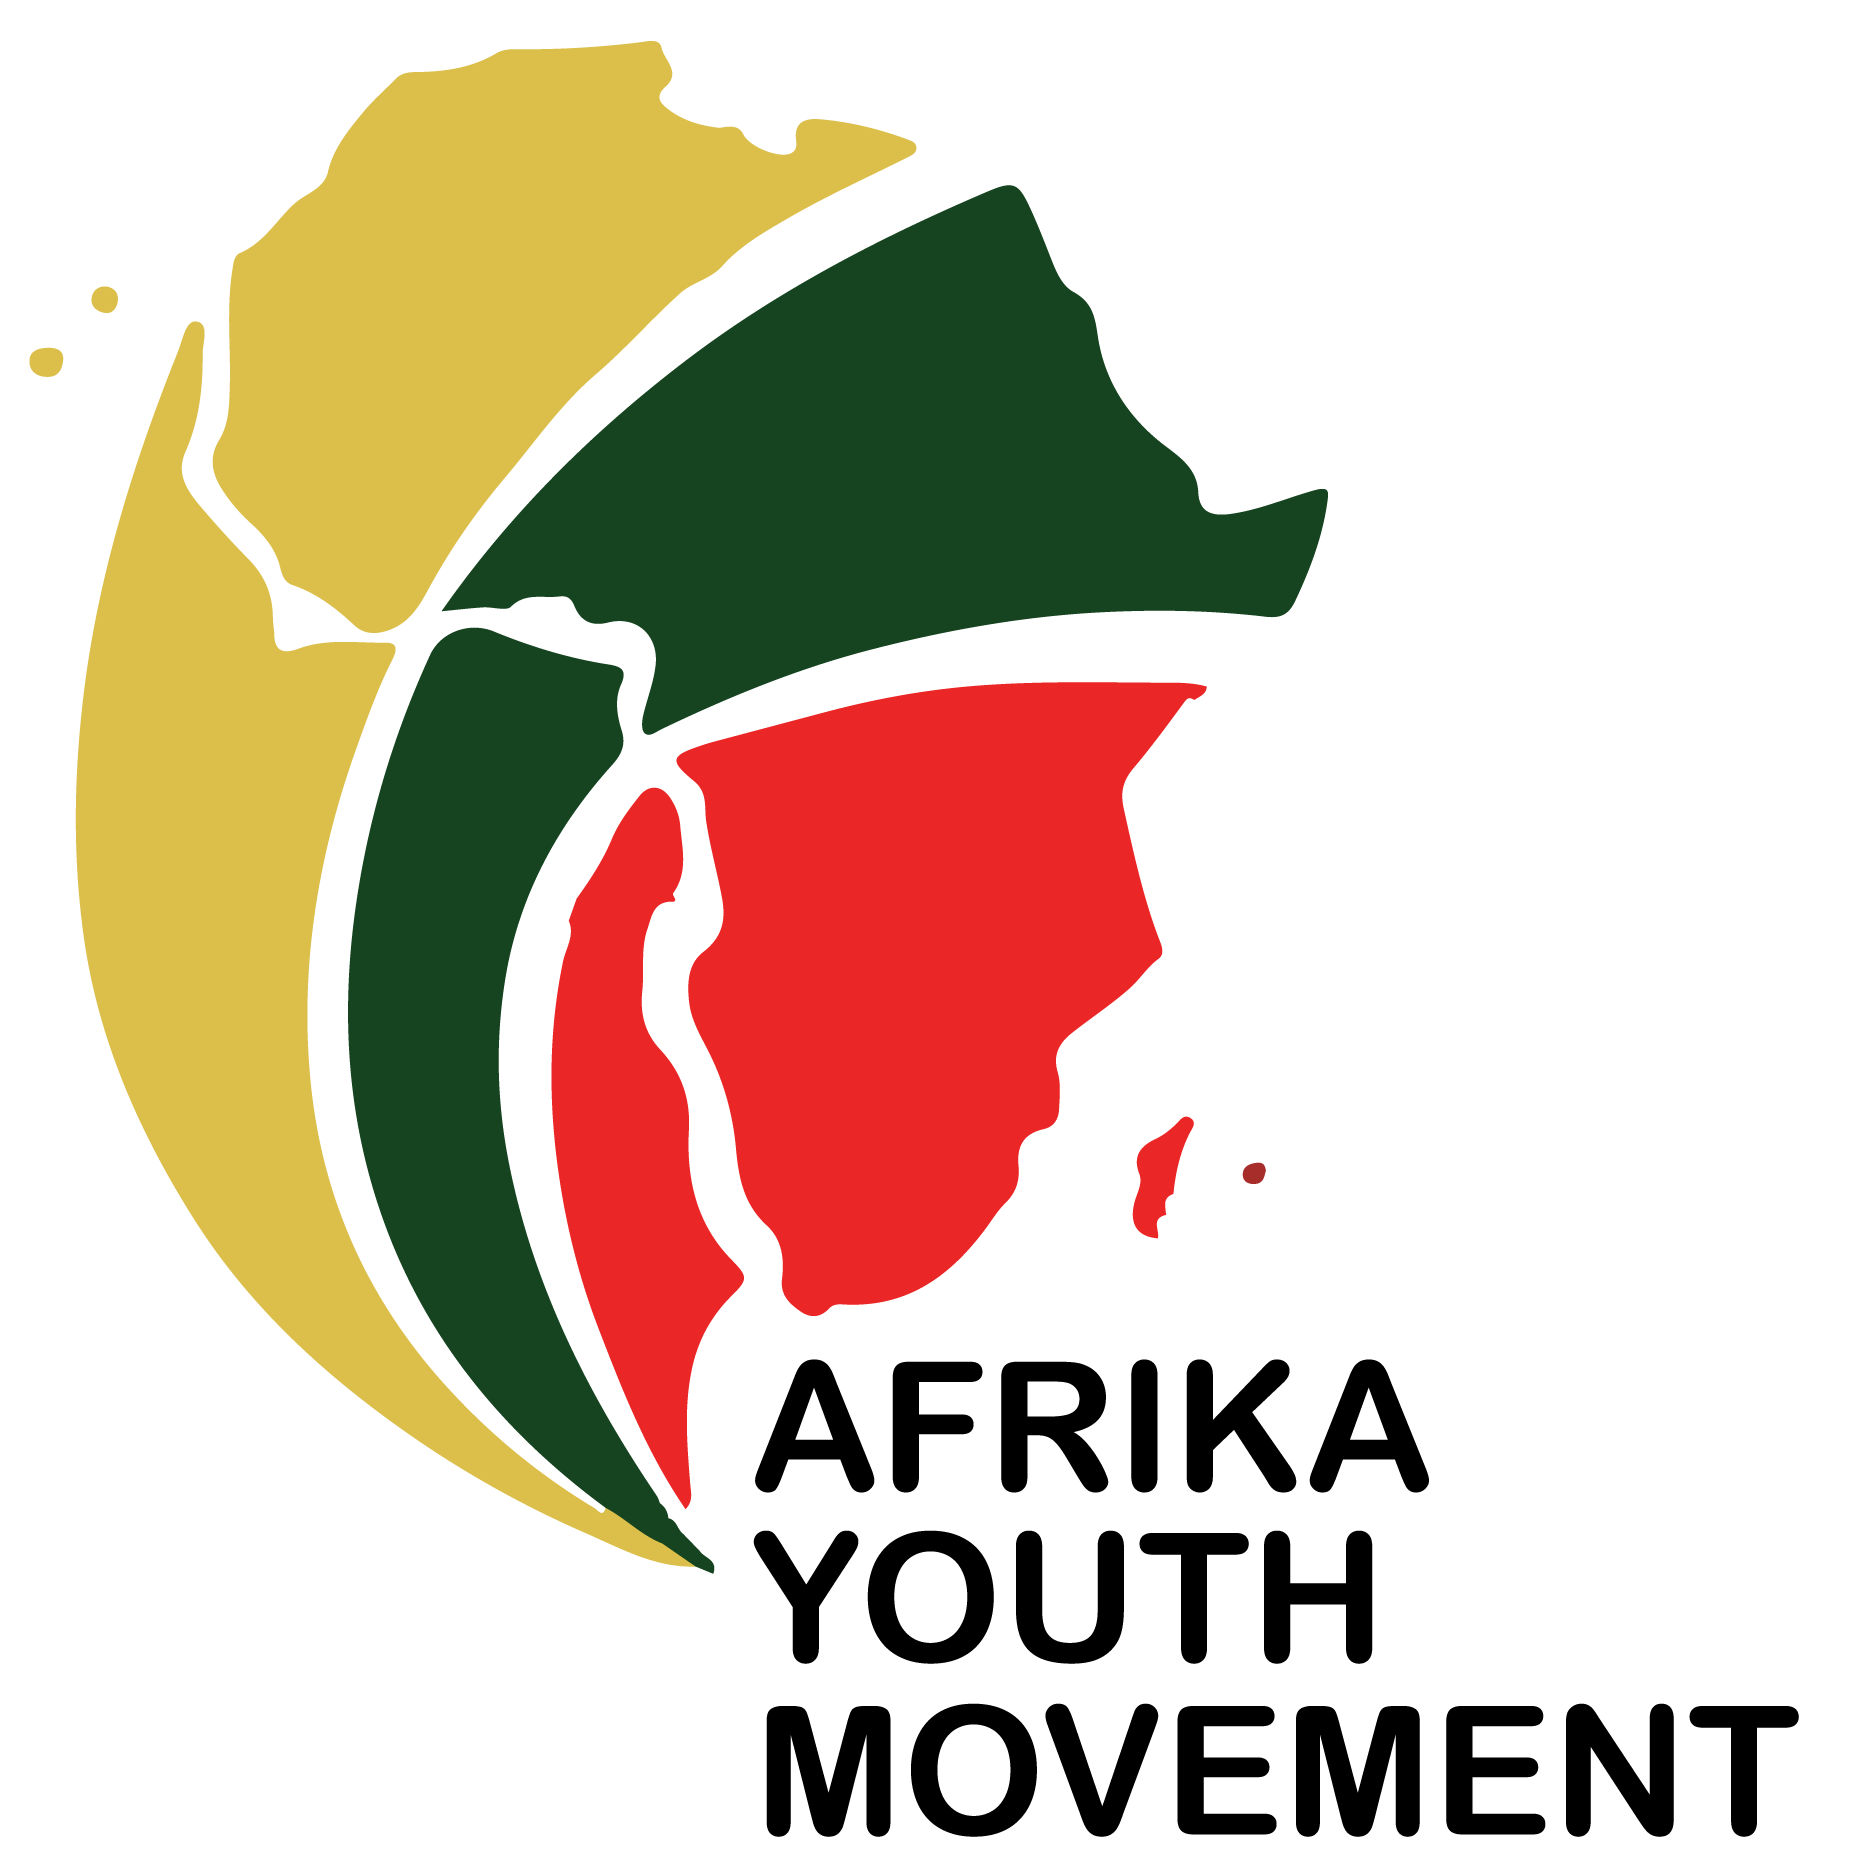 Call for Application: Afrika Youth Movement Correspondents for #TrueAfrika Campaign 2017